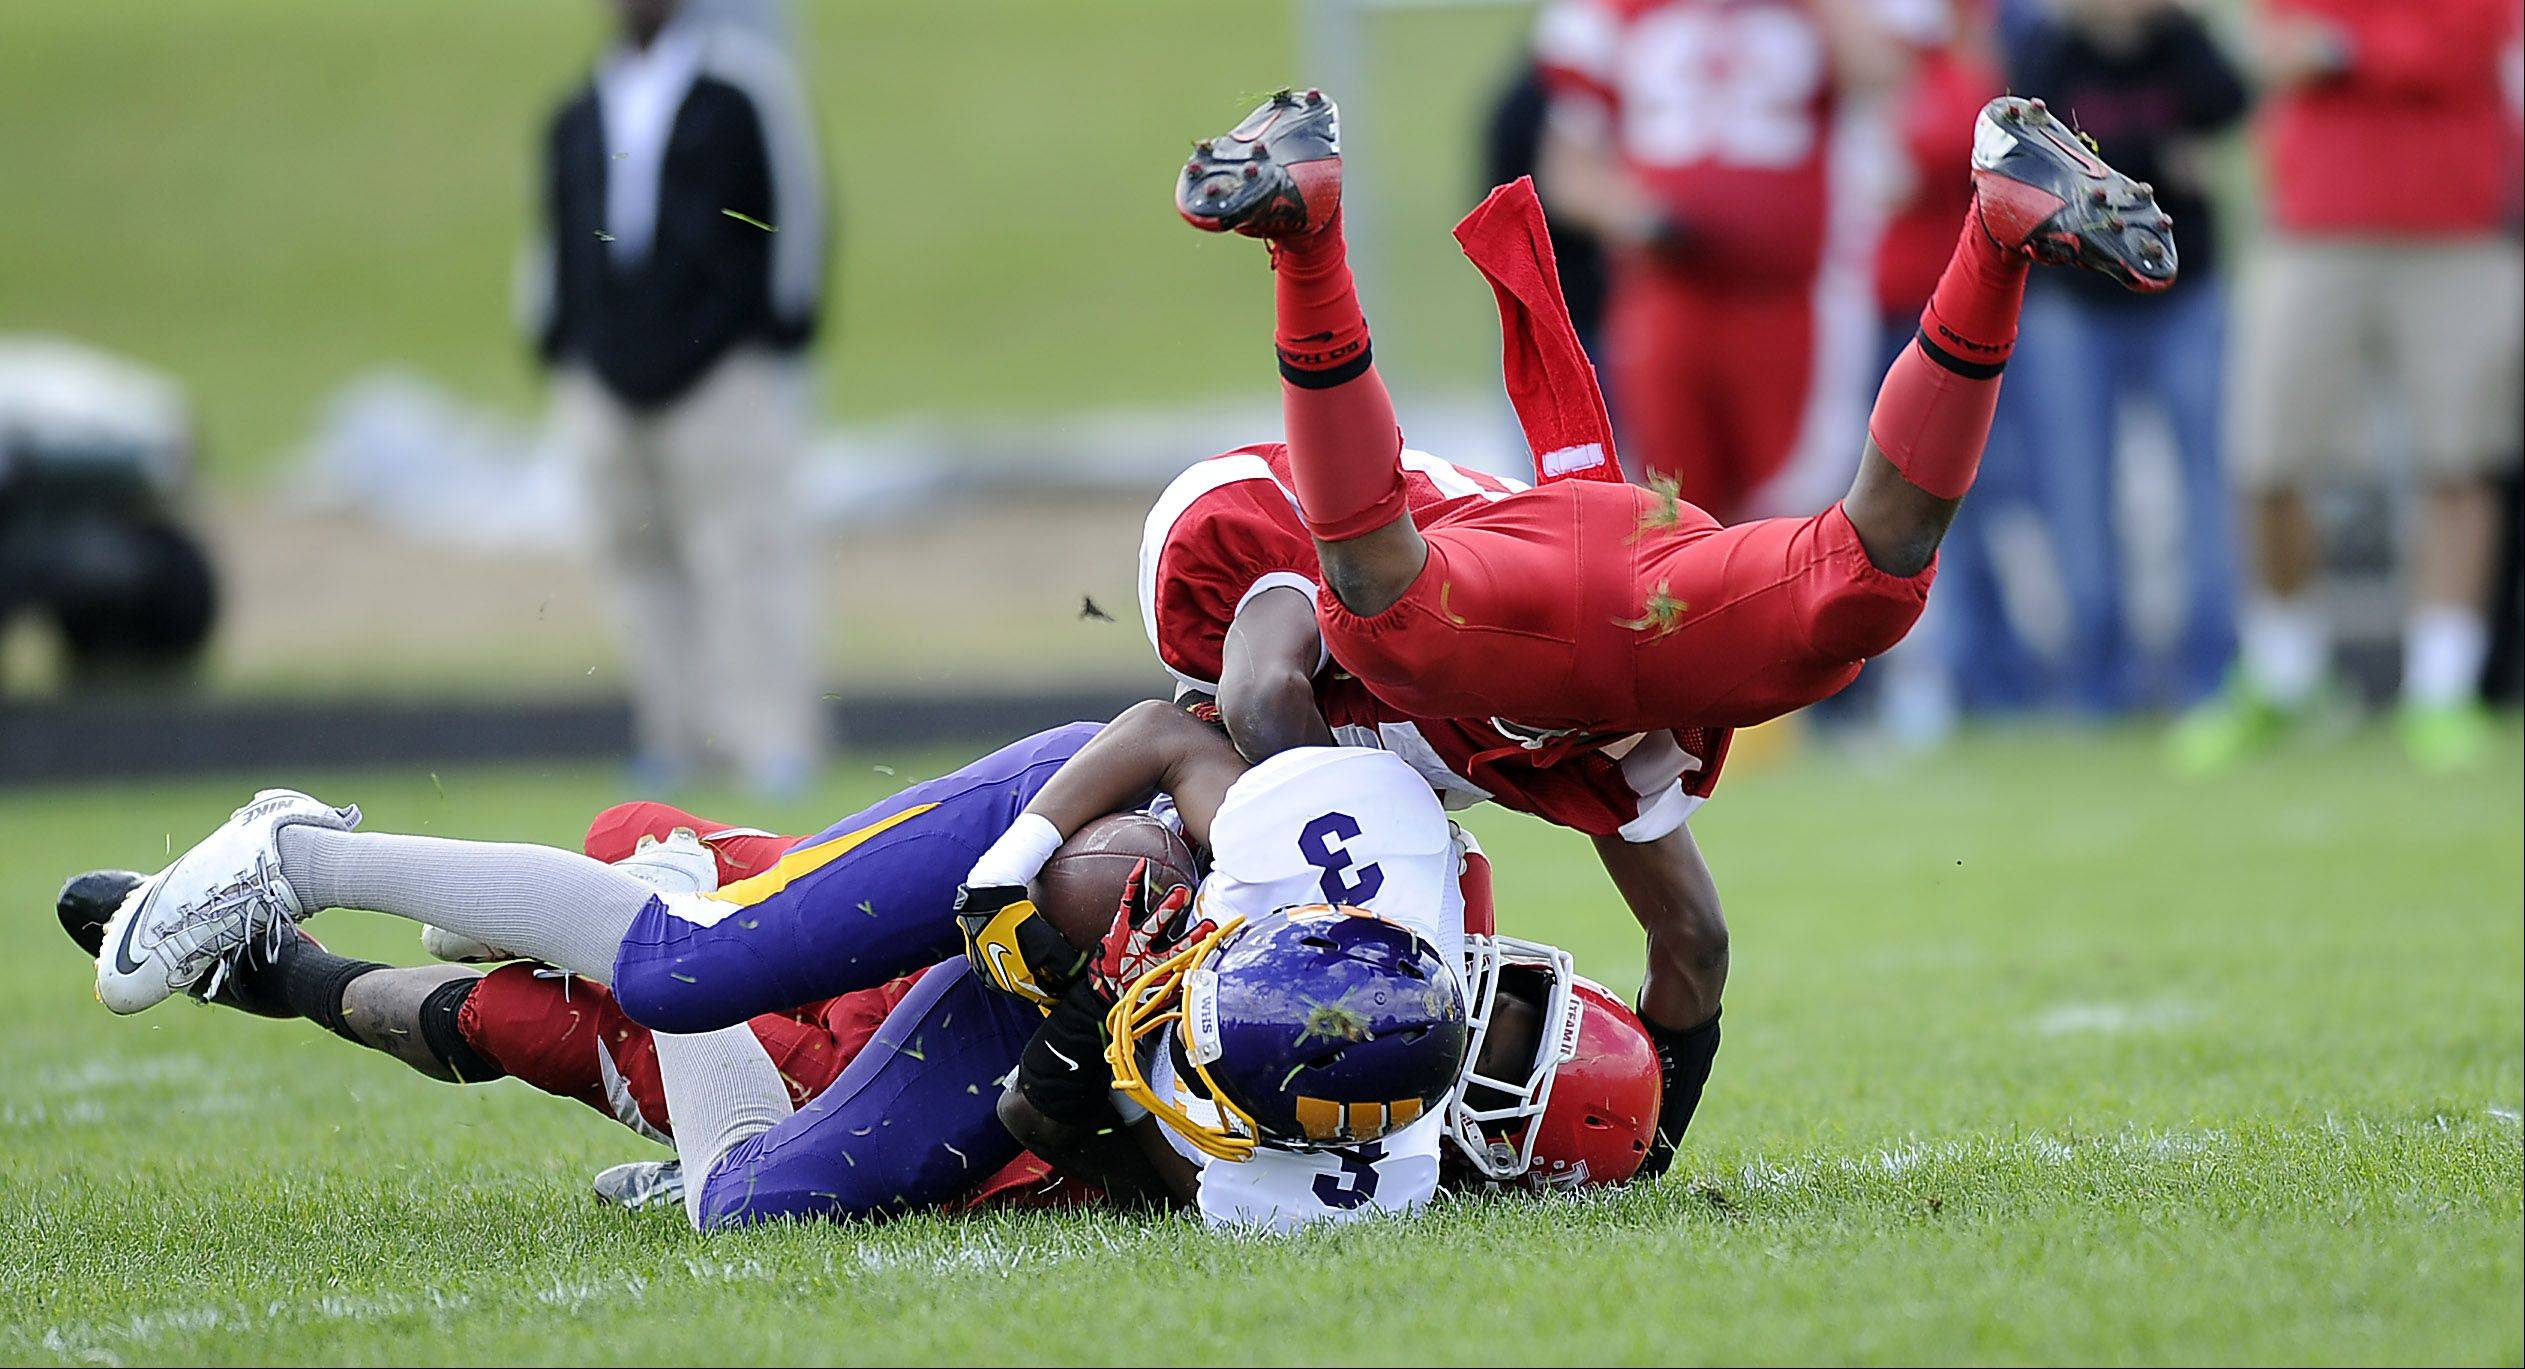 Wauconda's Josh Anderson is tackled by Tazari Bryant for short yardage in the first half at North Chicago on Saturday.